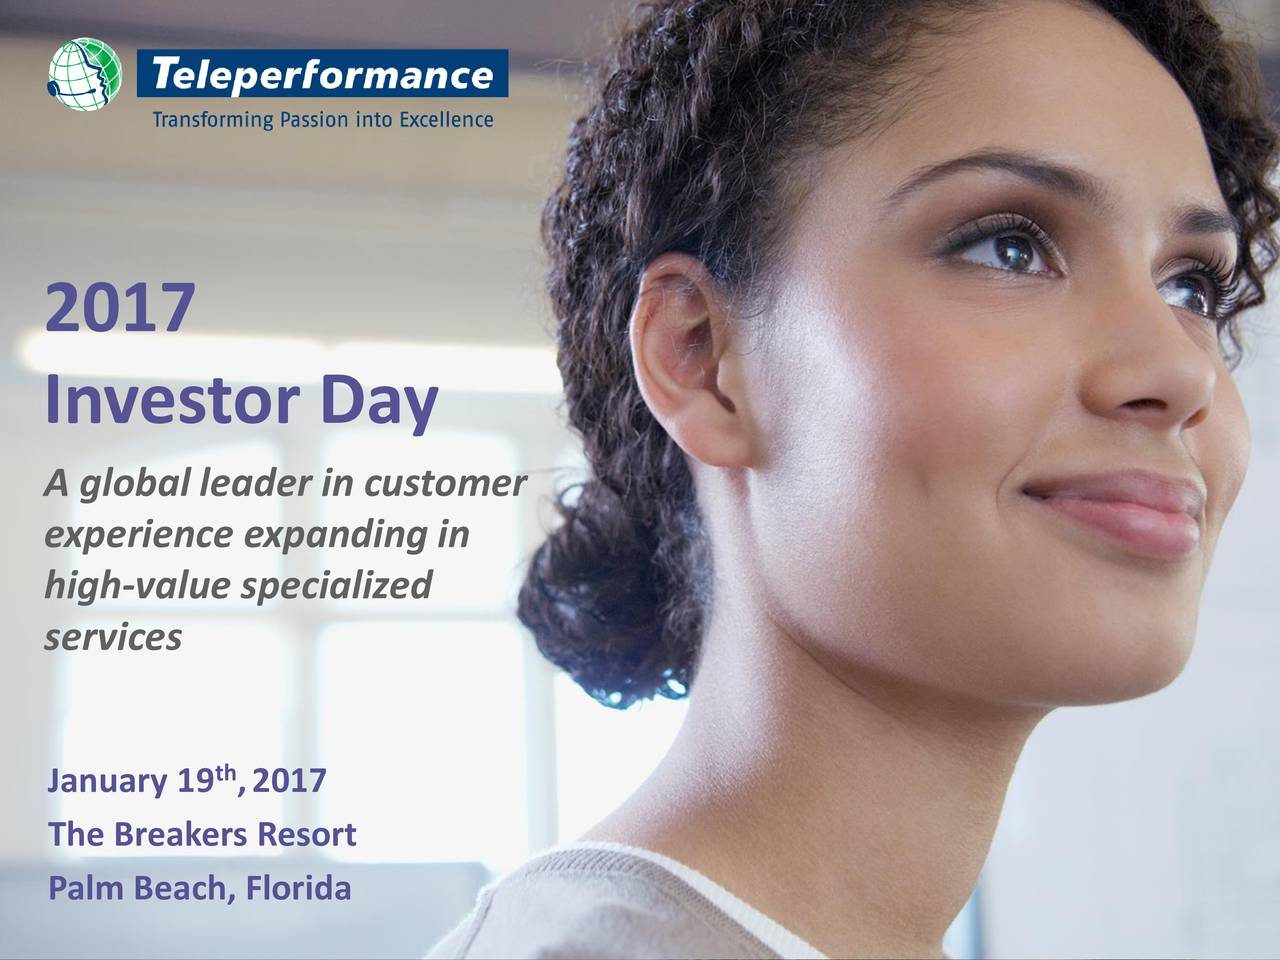 Investor Day A global leader in customer experience expanding in high-value specialized services January 19 ,2017 The Breakers Resort Palm Beach, Florida